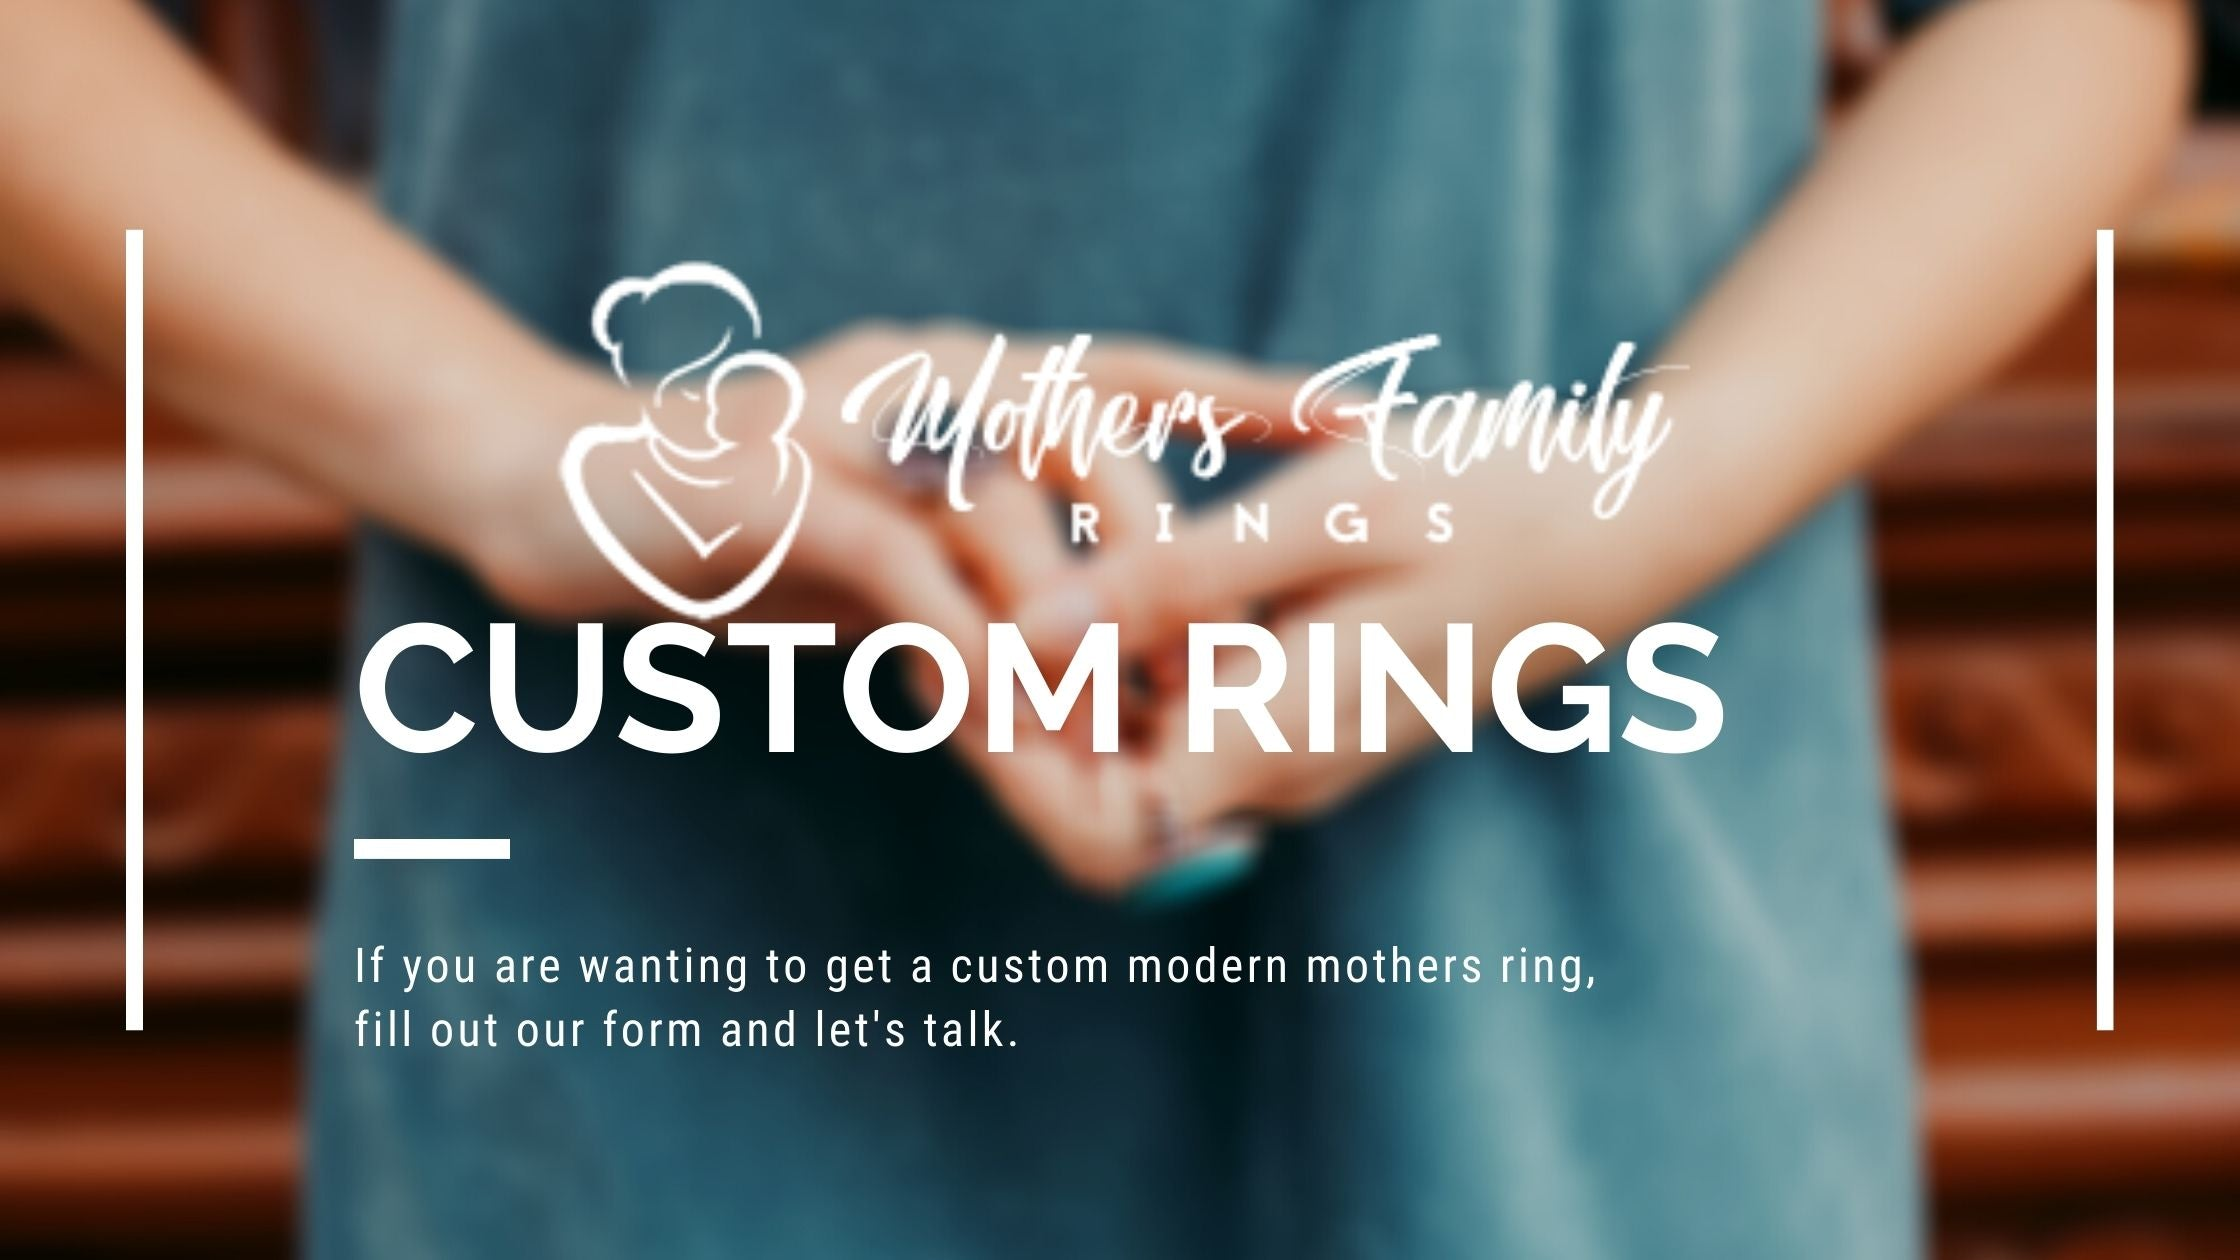 custom rings by mothers family rings